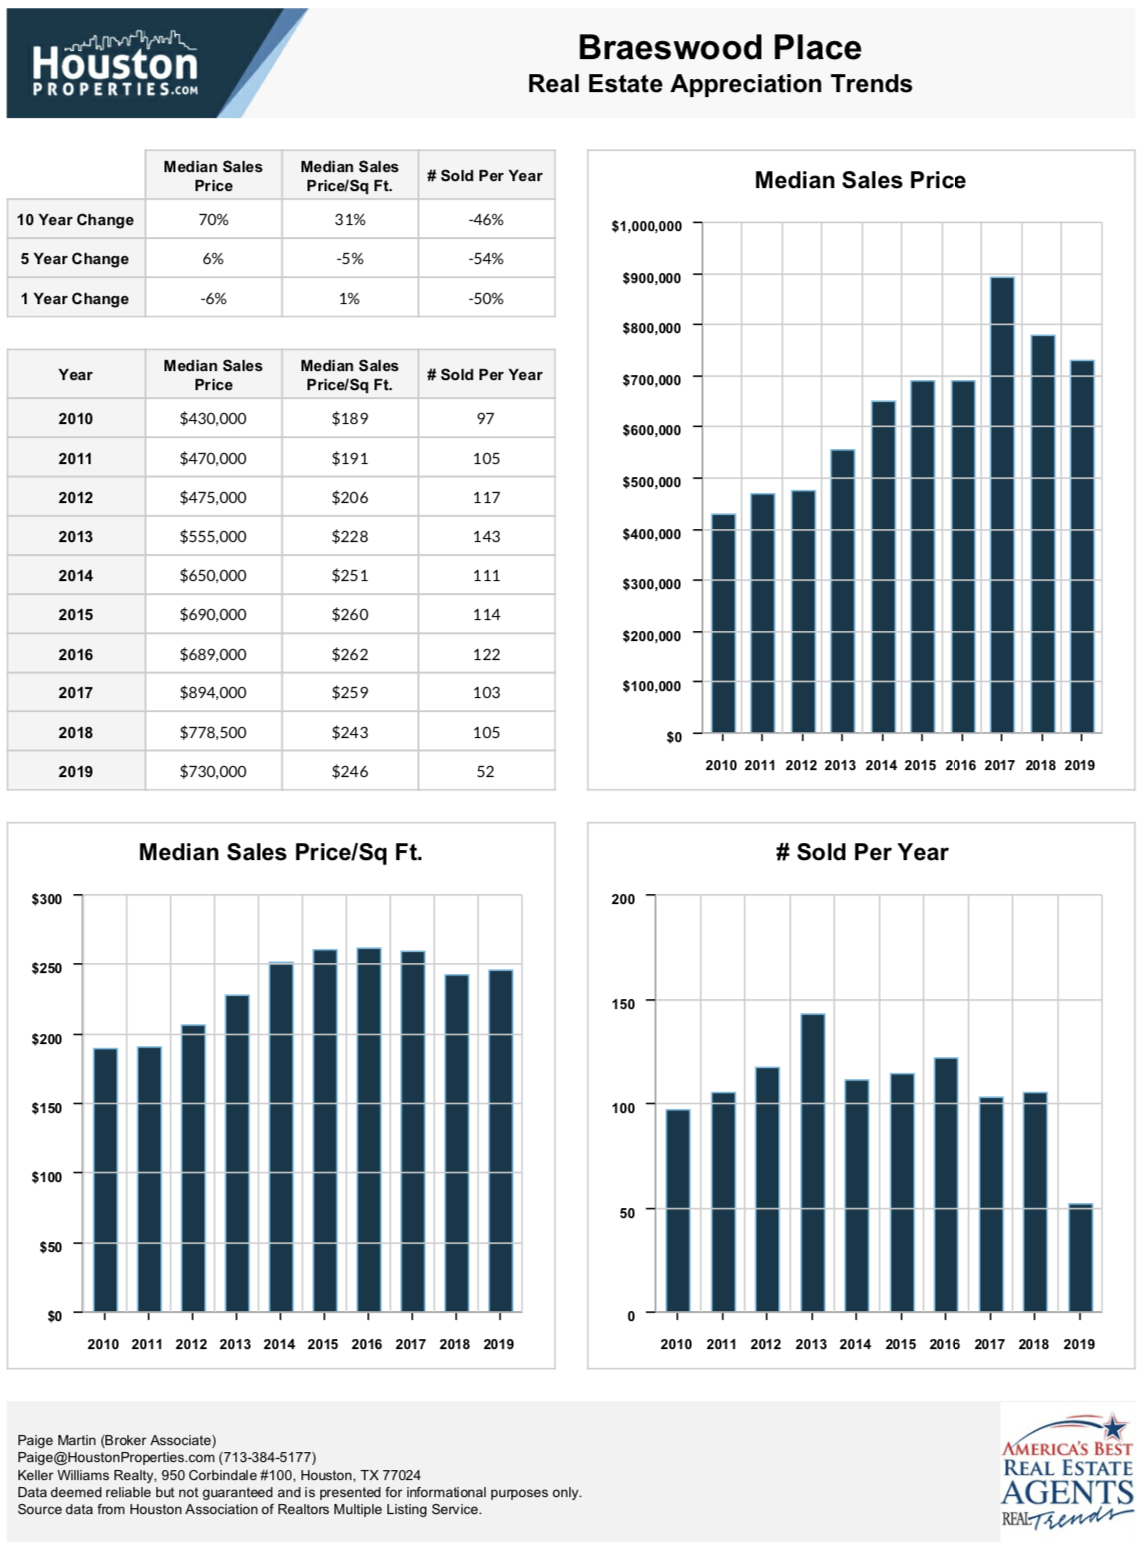 Braeswood Place Real Estate Appreciation Stats